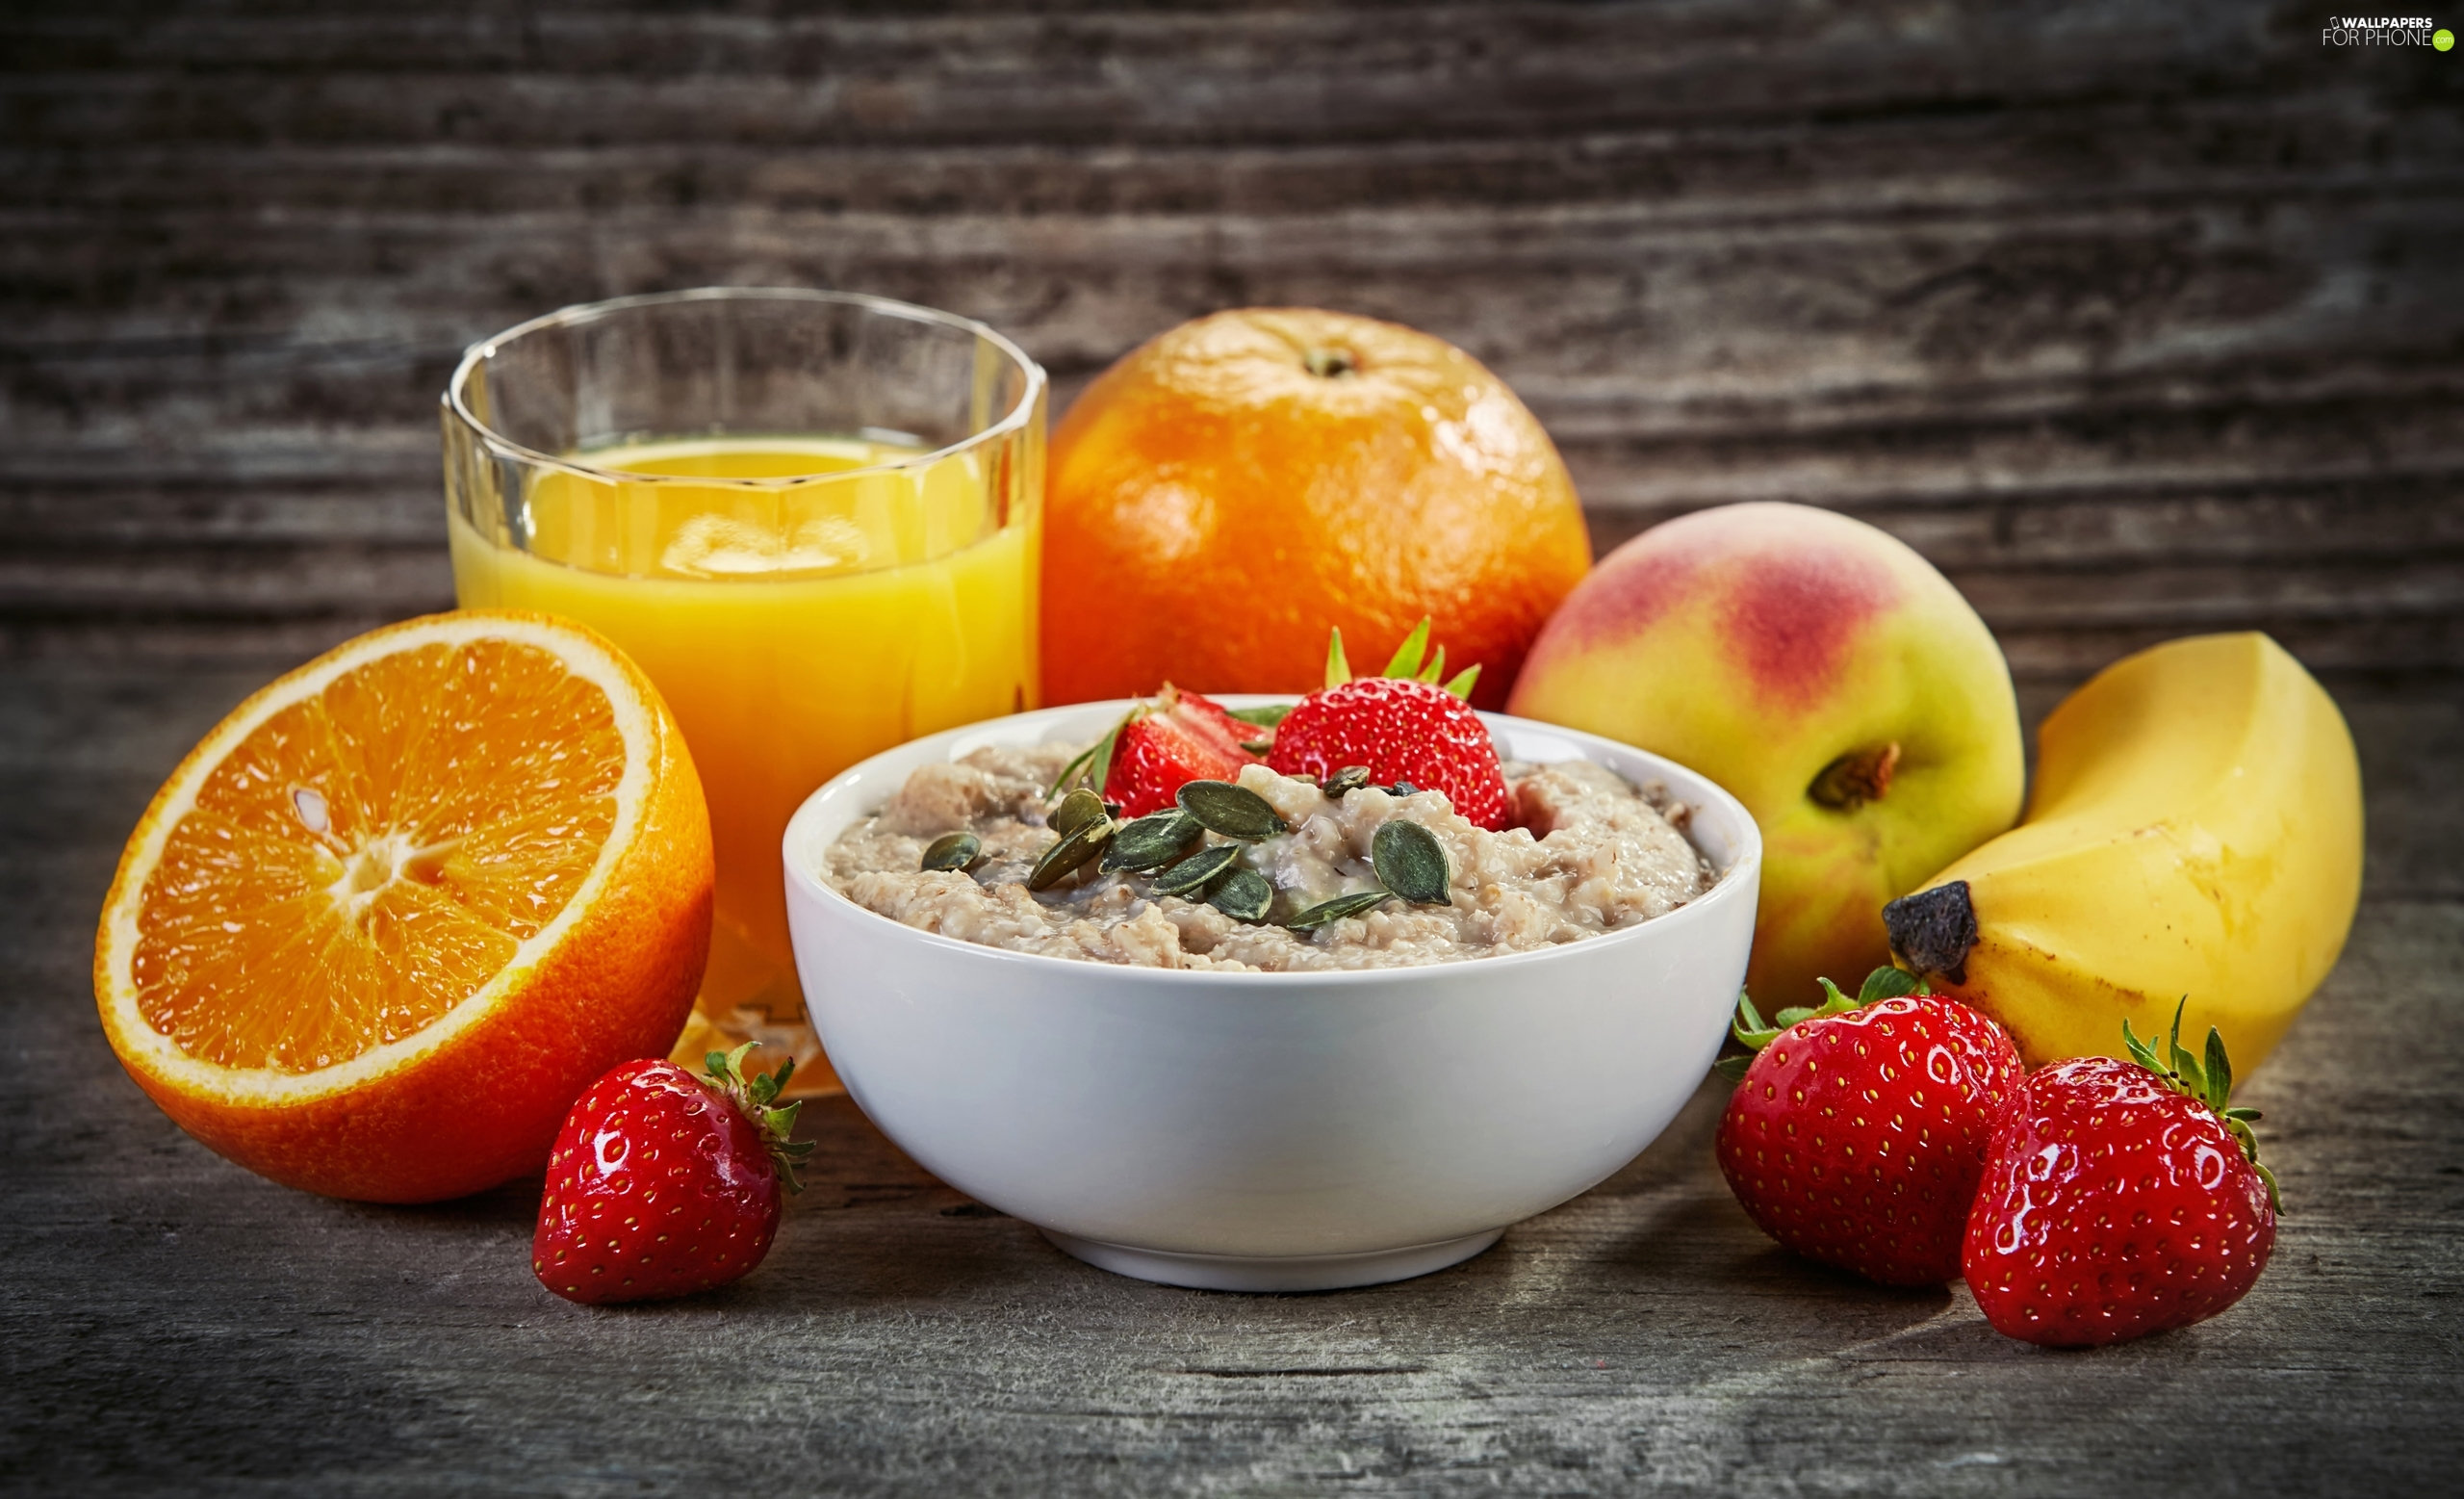 orange, bowl, Banana, oatmeal, composition, strawberries, juice